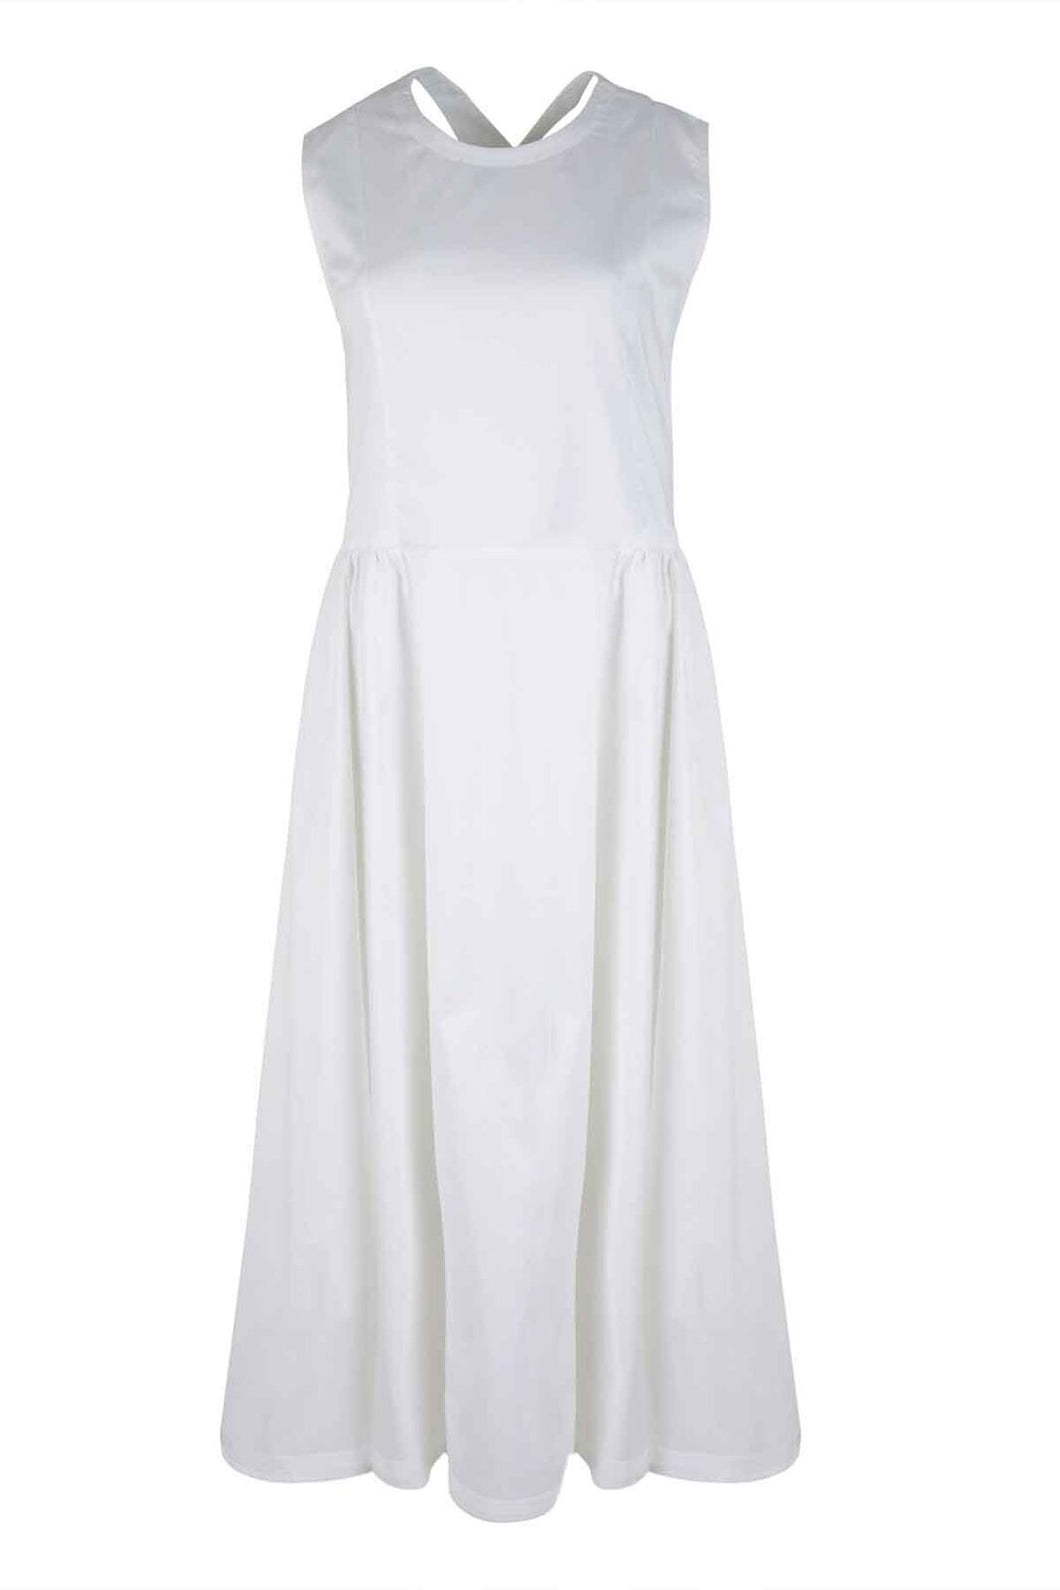 Cross My Heart Dress in White